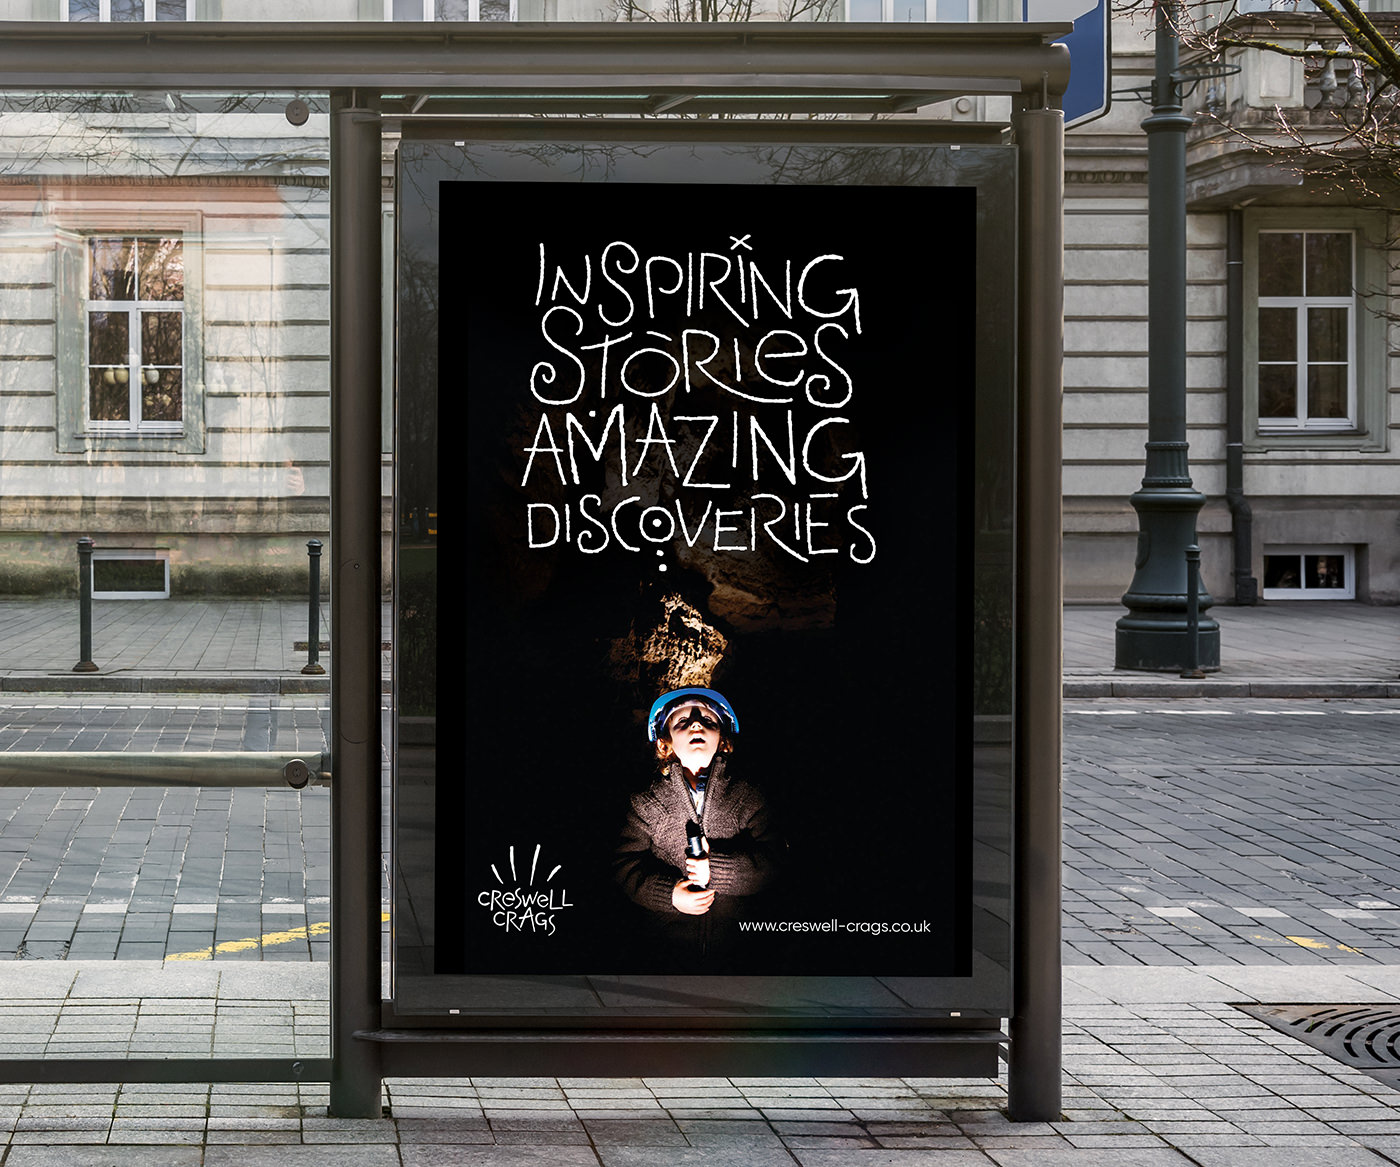 Heritage site advertising campaign